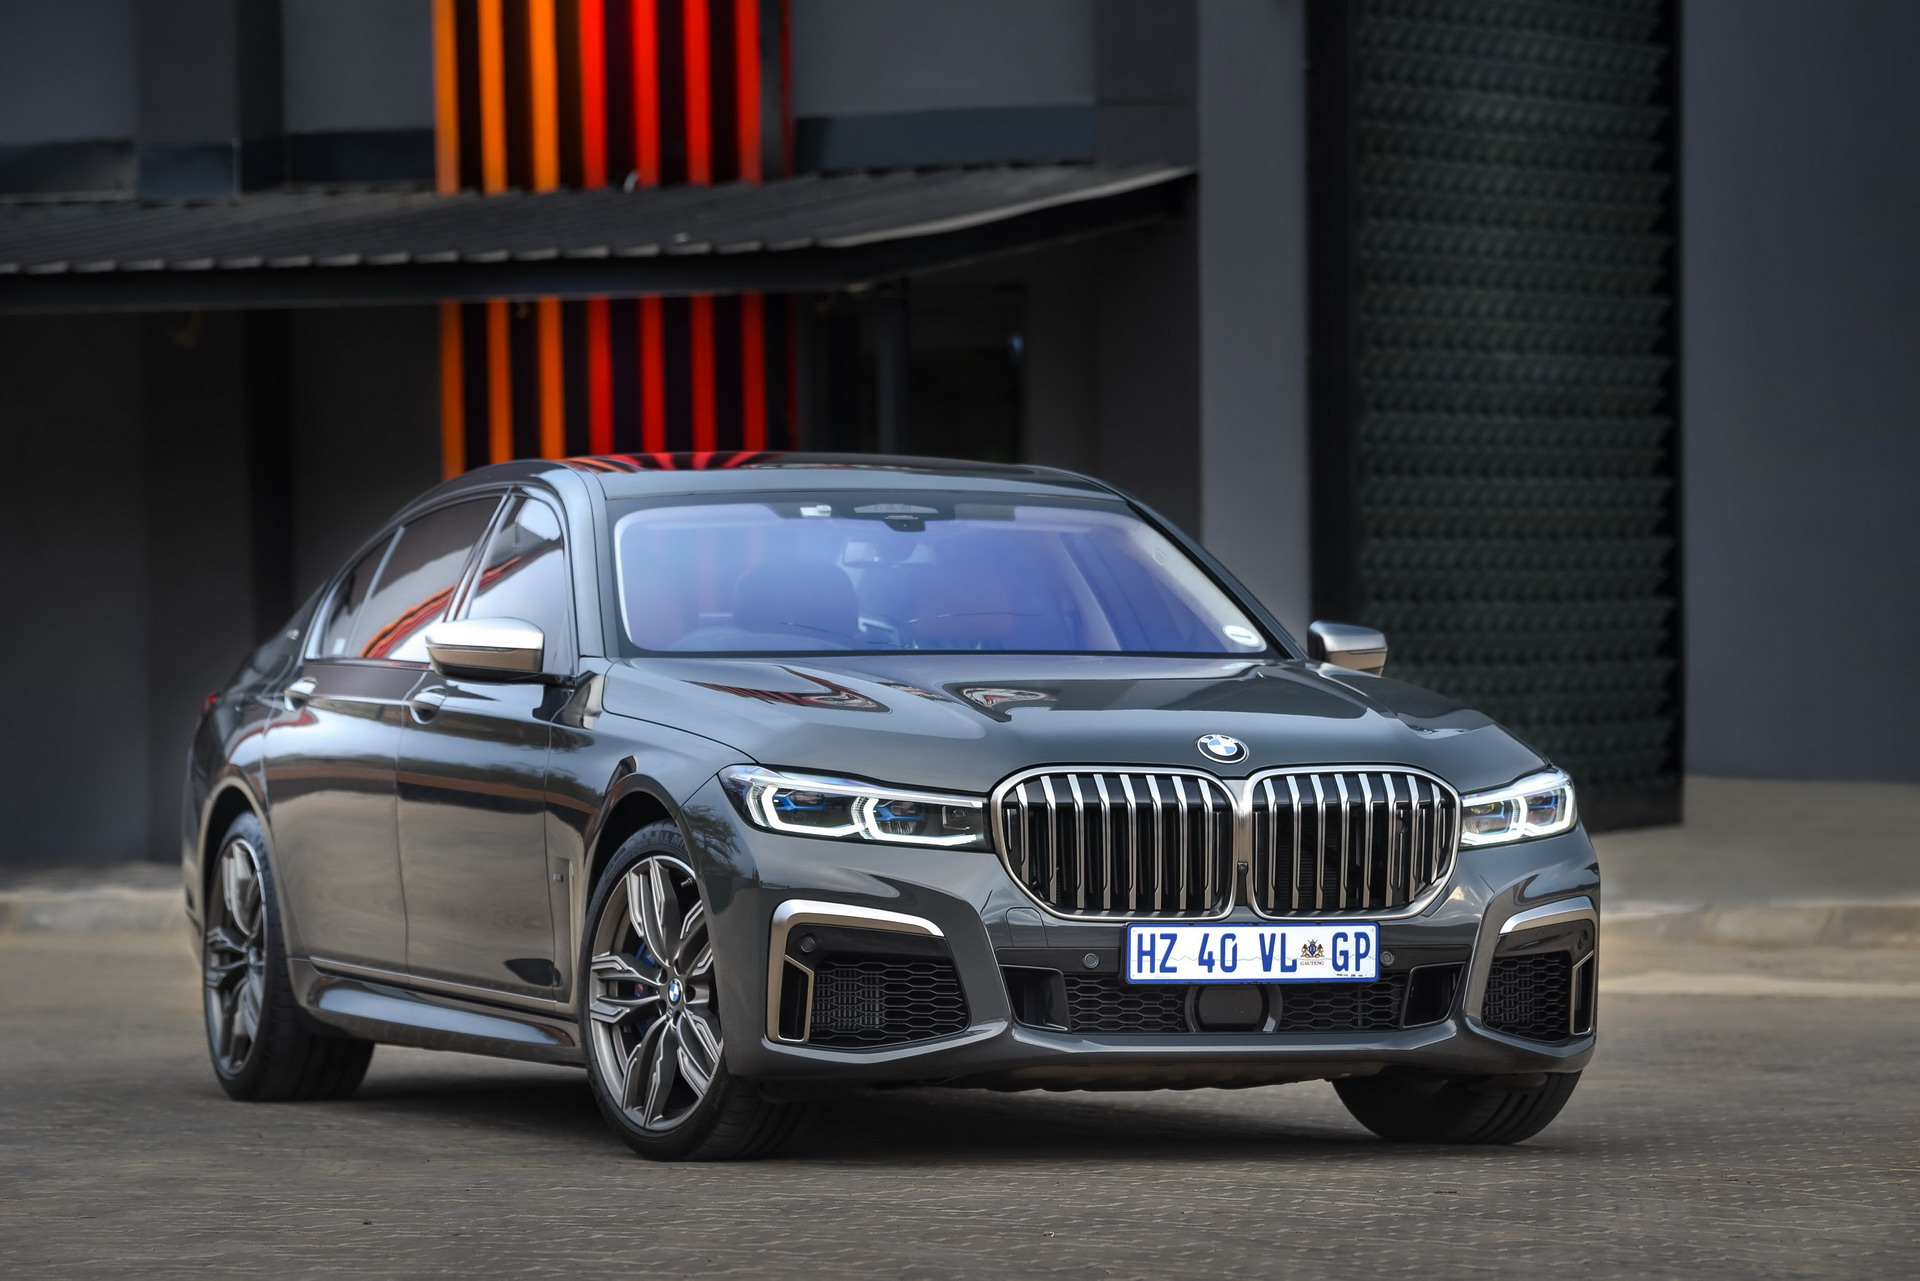 The New BMW M760Li xDrive G12 6